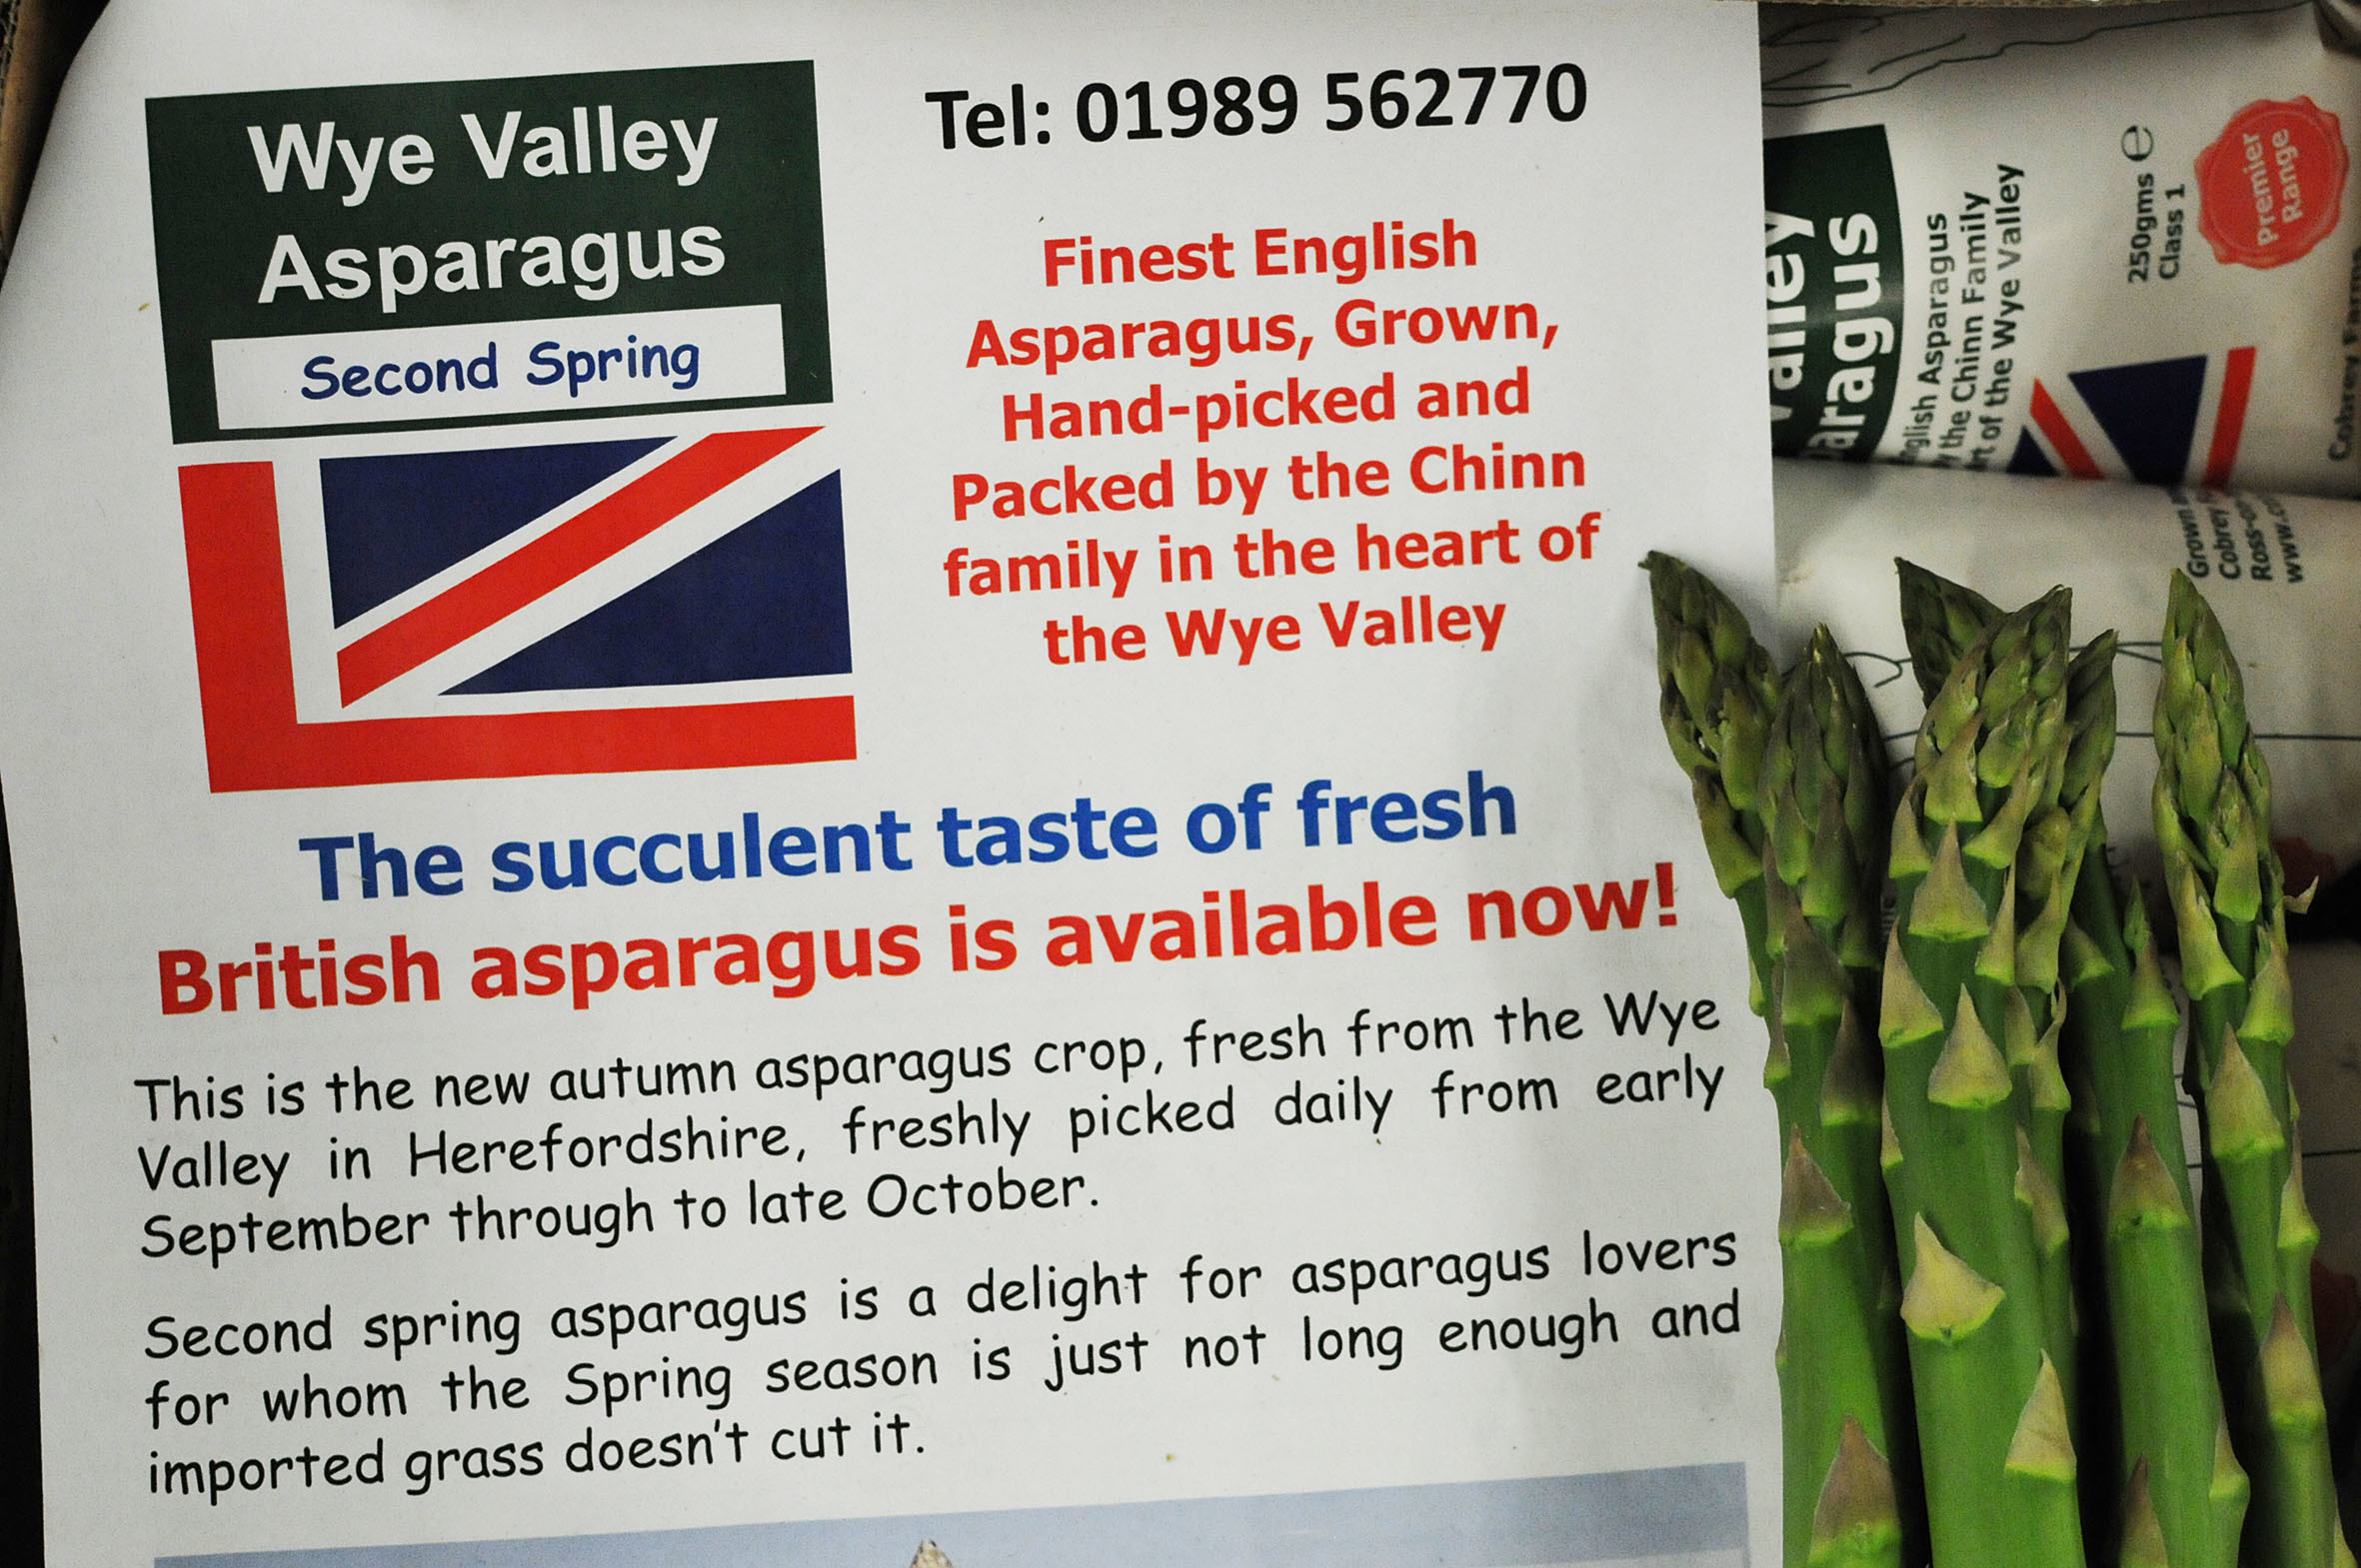 2013-09-01-Fruit-and-Veg-Market-Report-asparagus.jpg?mtime=20170922121301#asset:11425